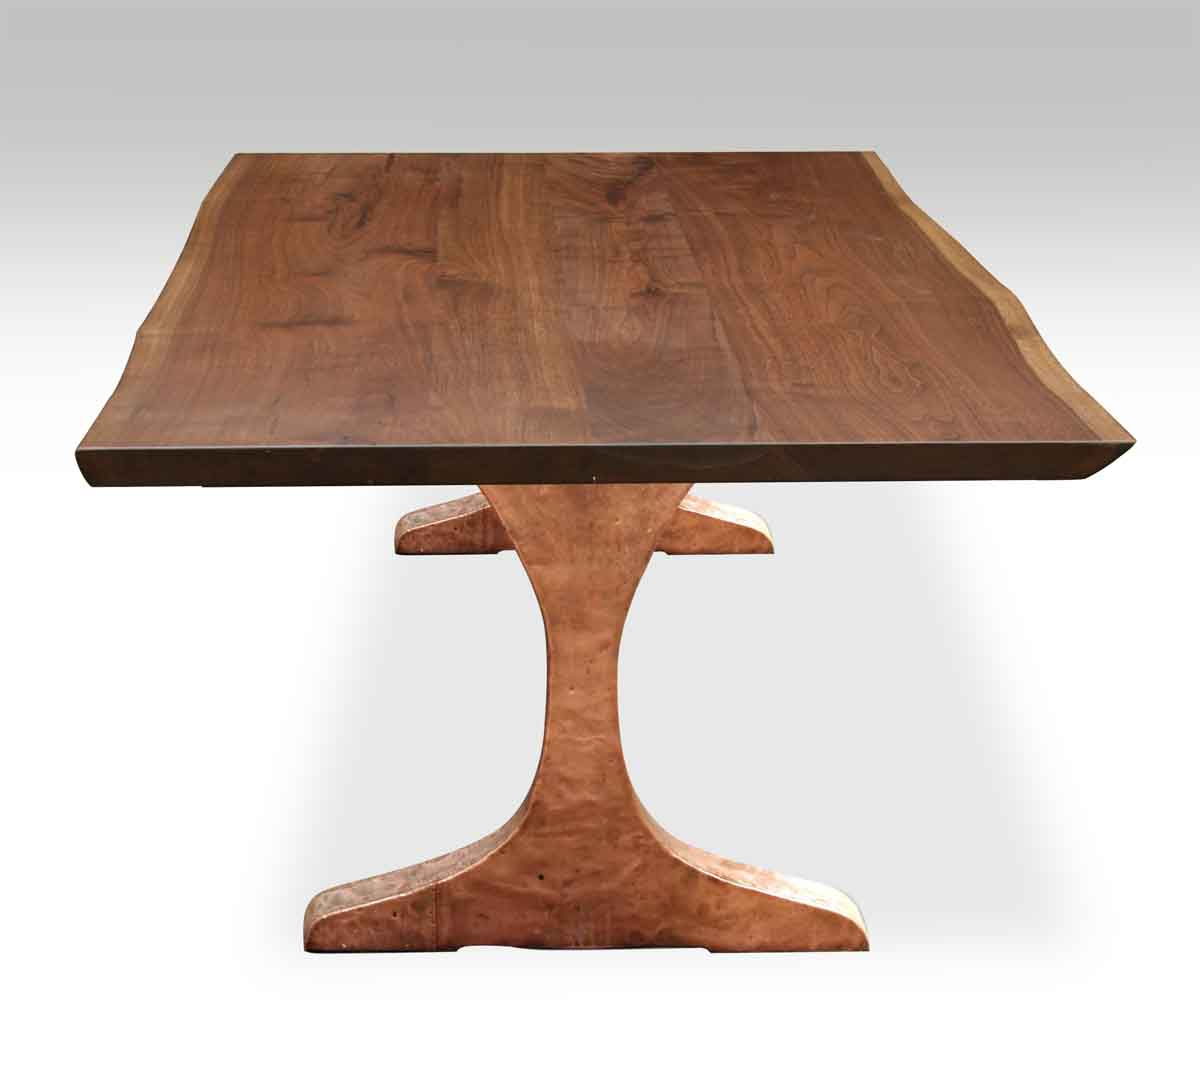 live edge walnut table top with copper clad legs olde good things. Black Bedroom Furniture Sets. Home Design Ideas